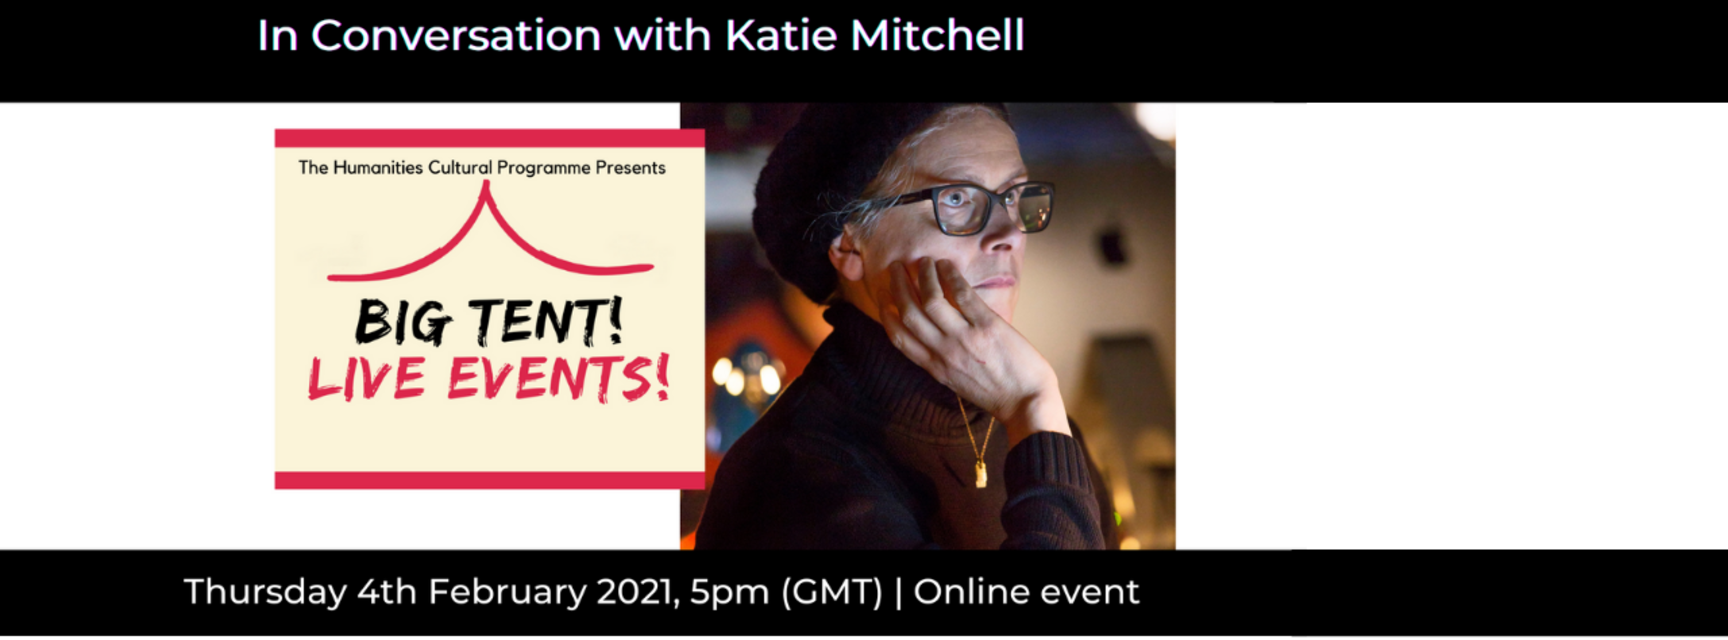 katie mitchell in conversation web carousel